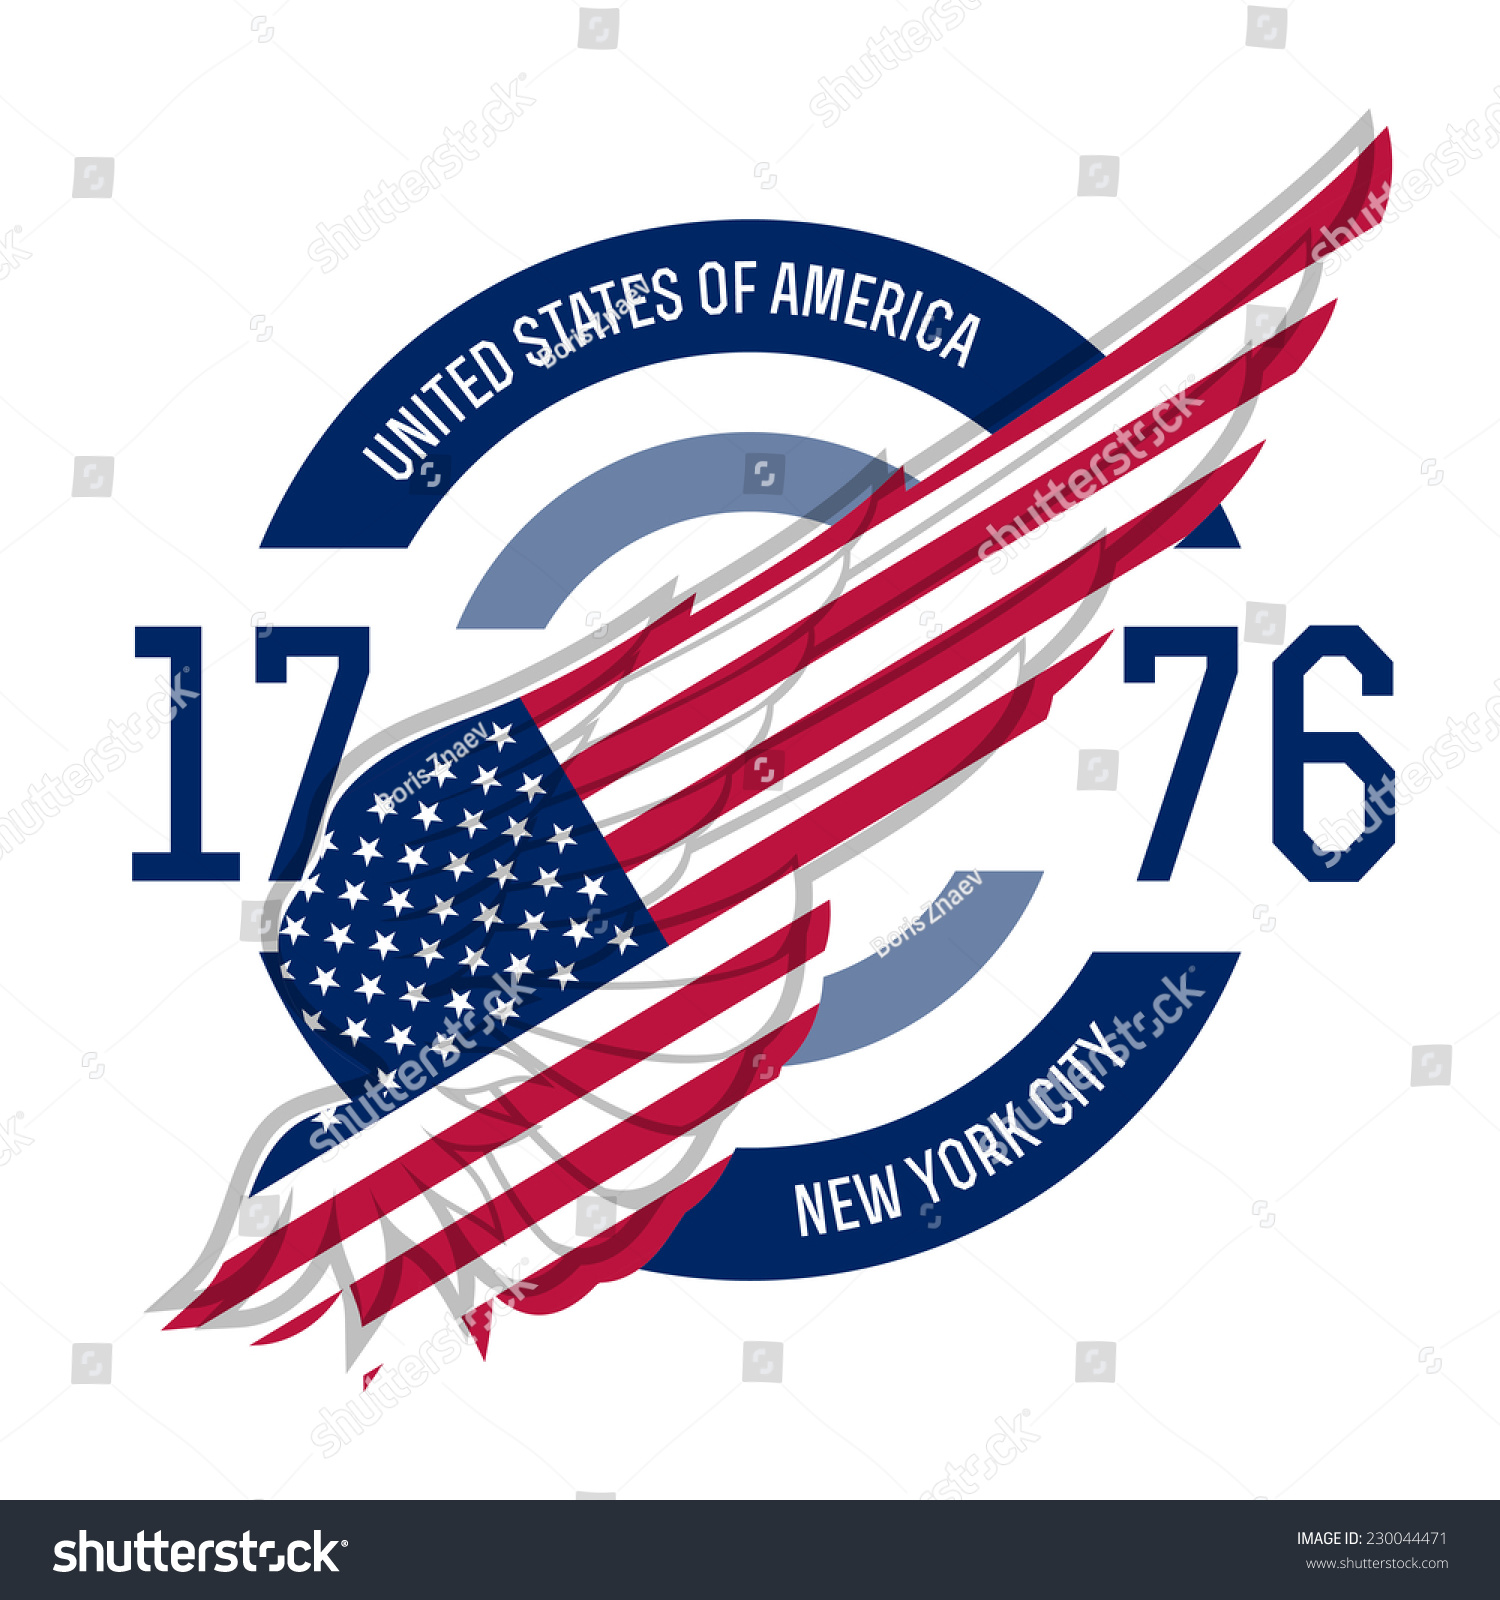 Shirt design usa - New York T Shirt Design Tee Templates With Wing And Usa Flag Colors And